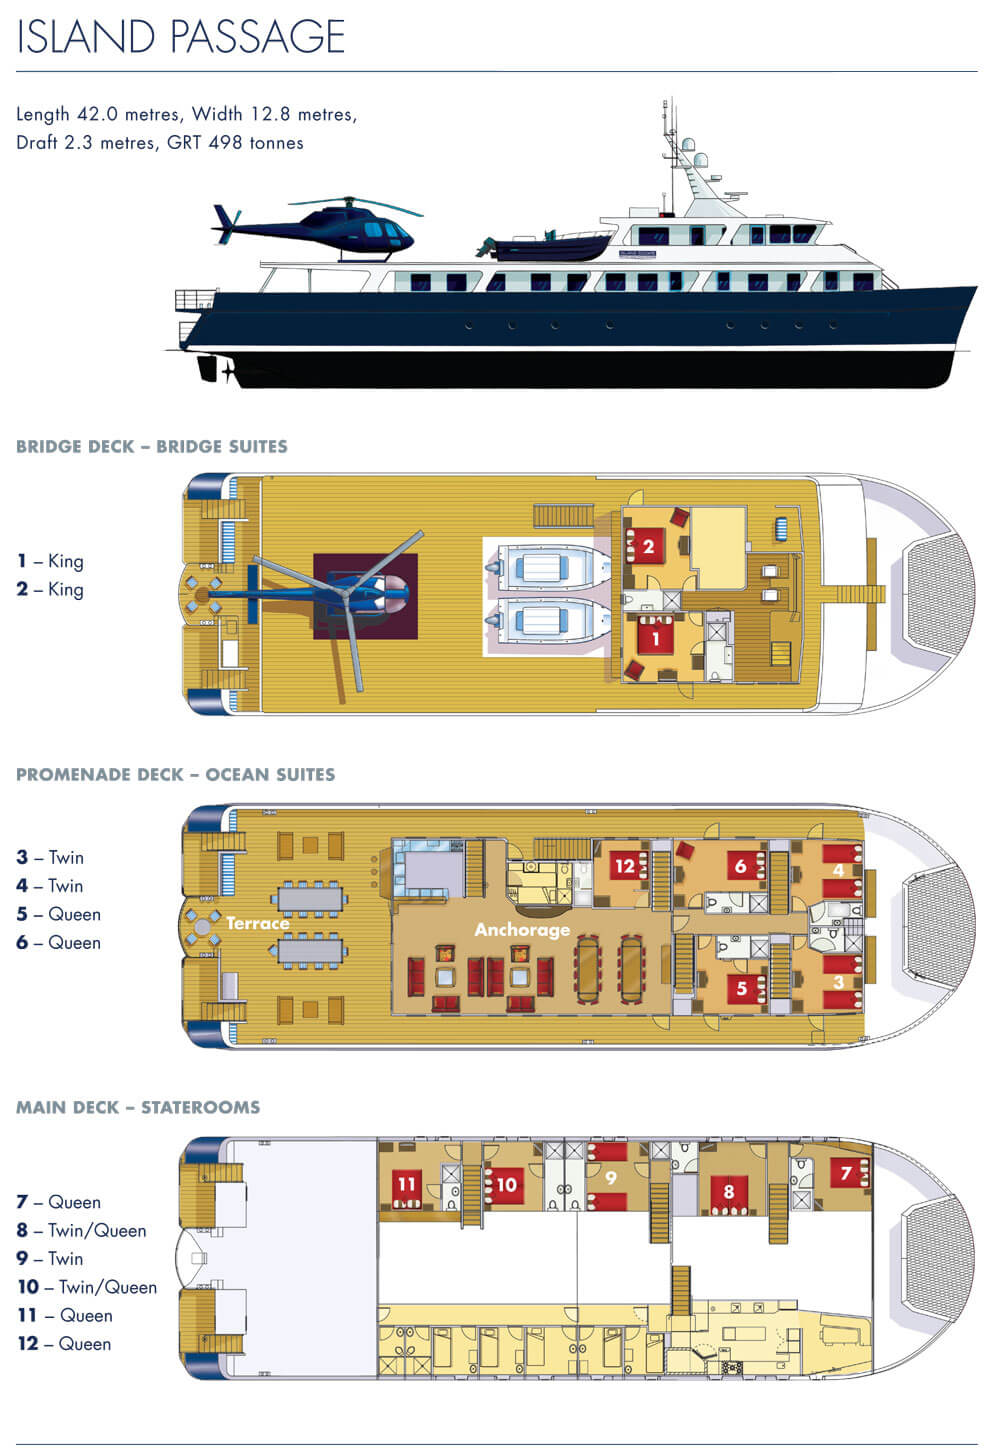 Cabin layout for Island Passage